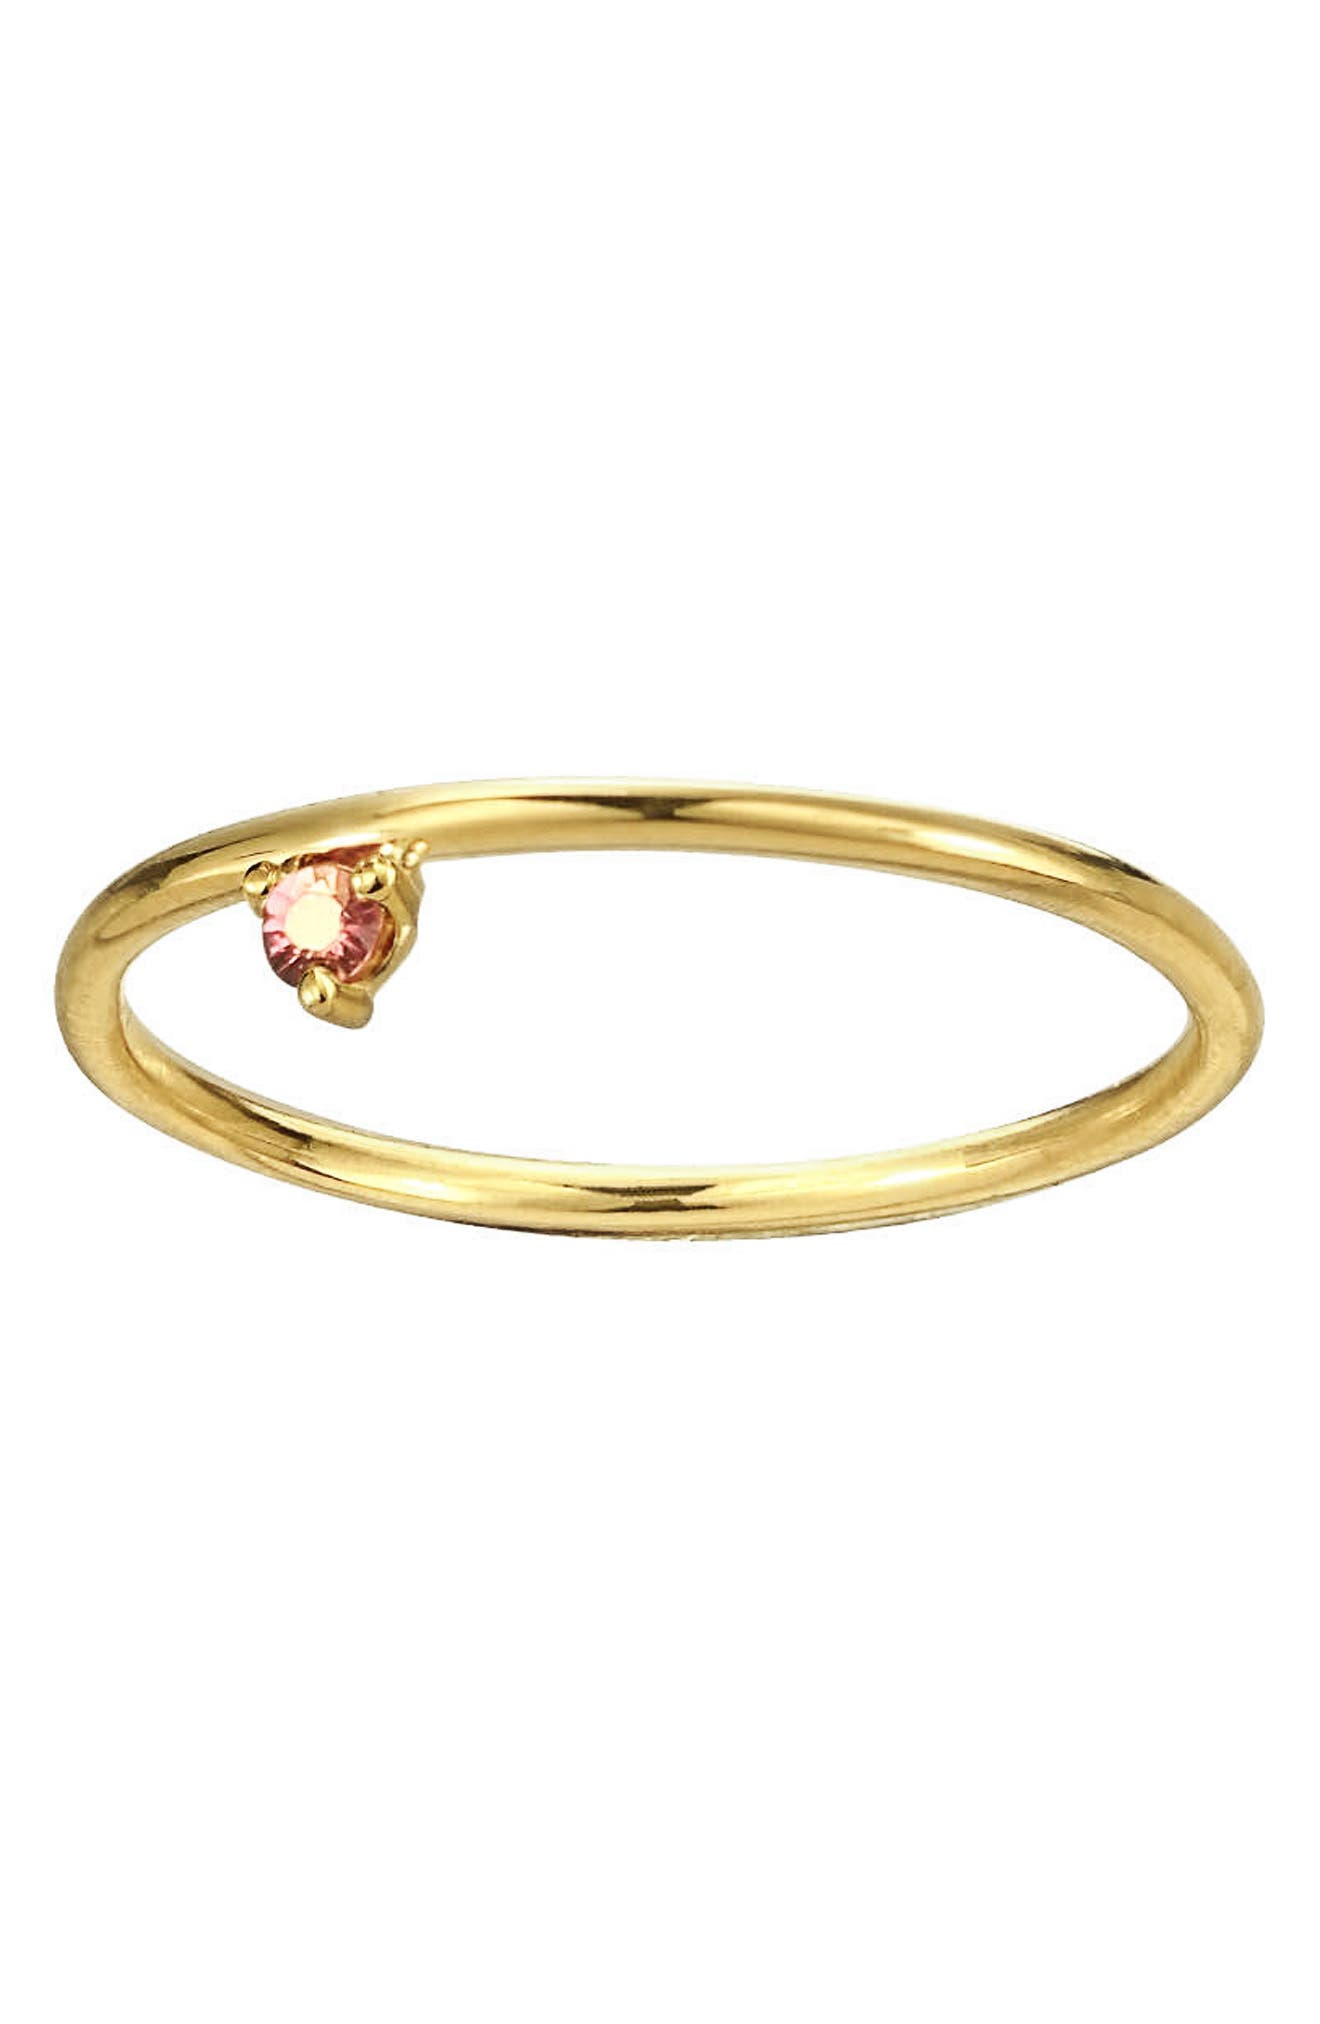 One Step Ring,                             Alternate thumbnail 3, color,                             Pink Tourmaline